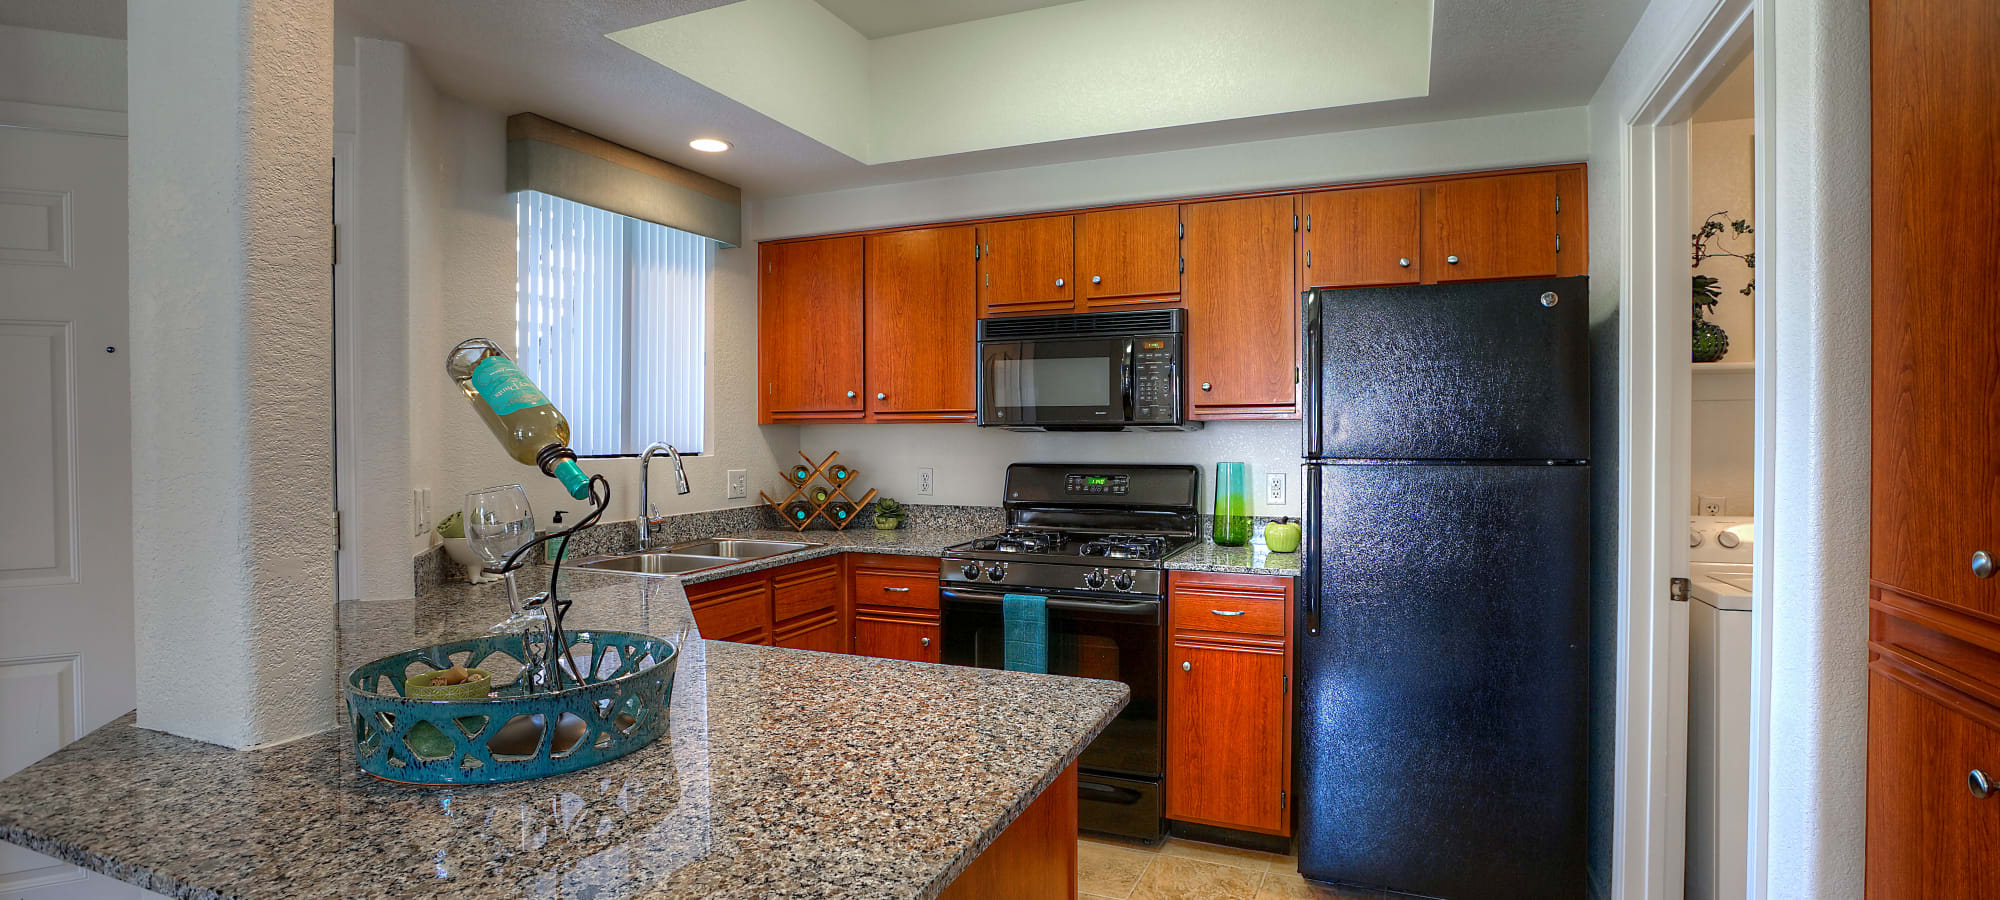 Kitchen with granite counter tops at San Palacio in Chandler, Arizona